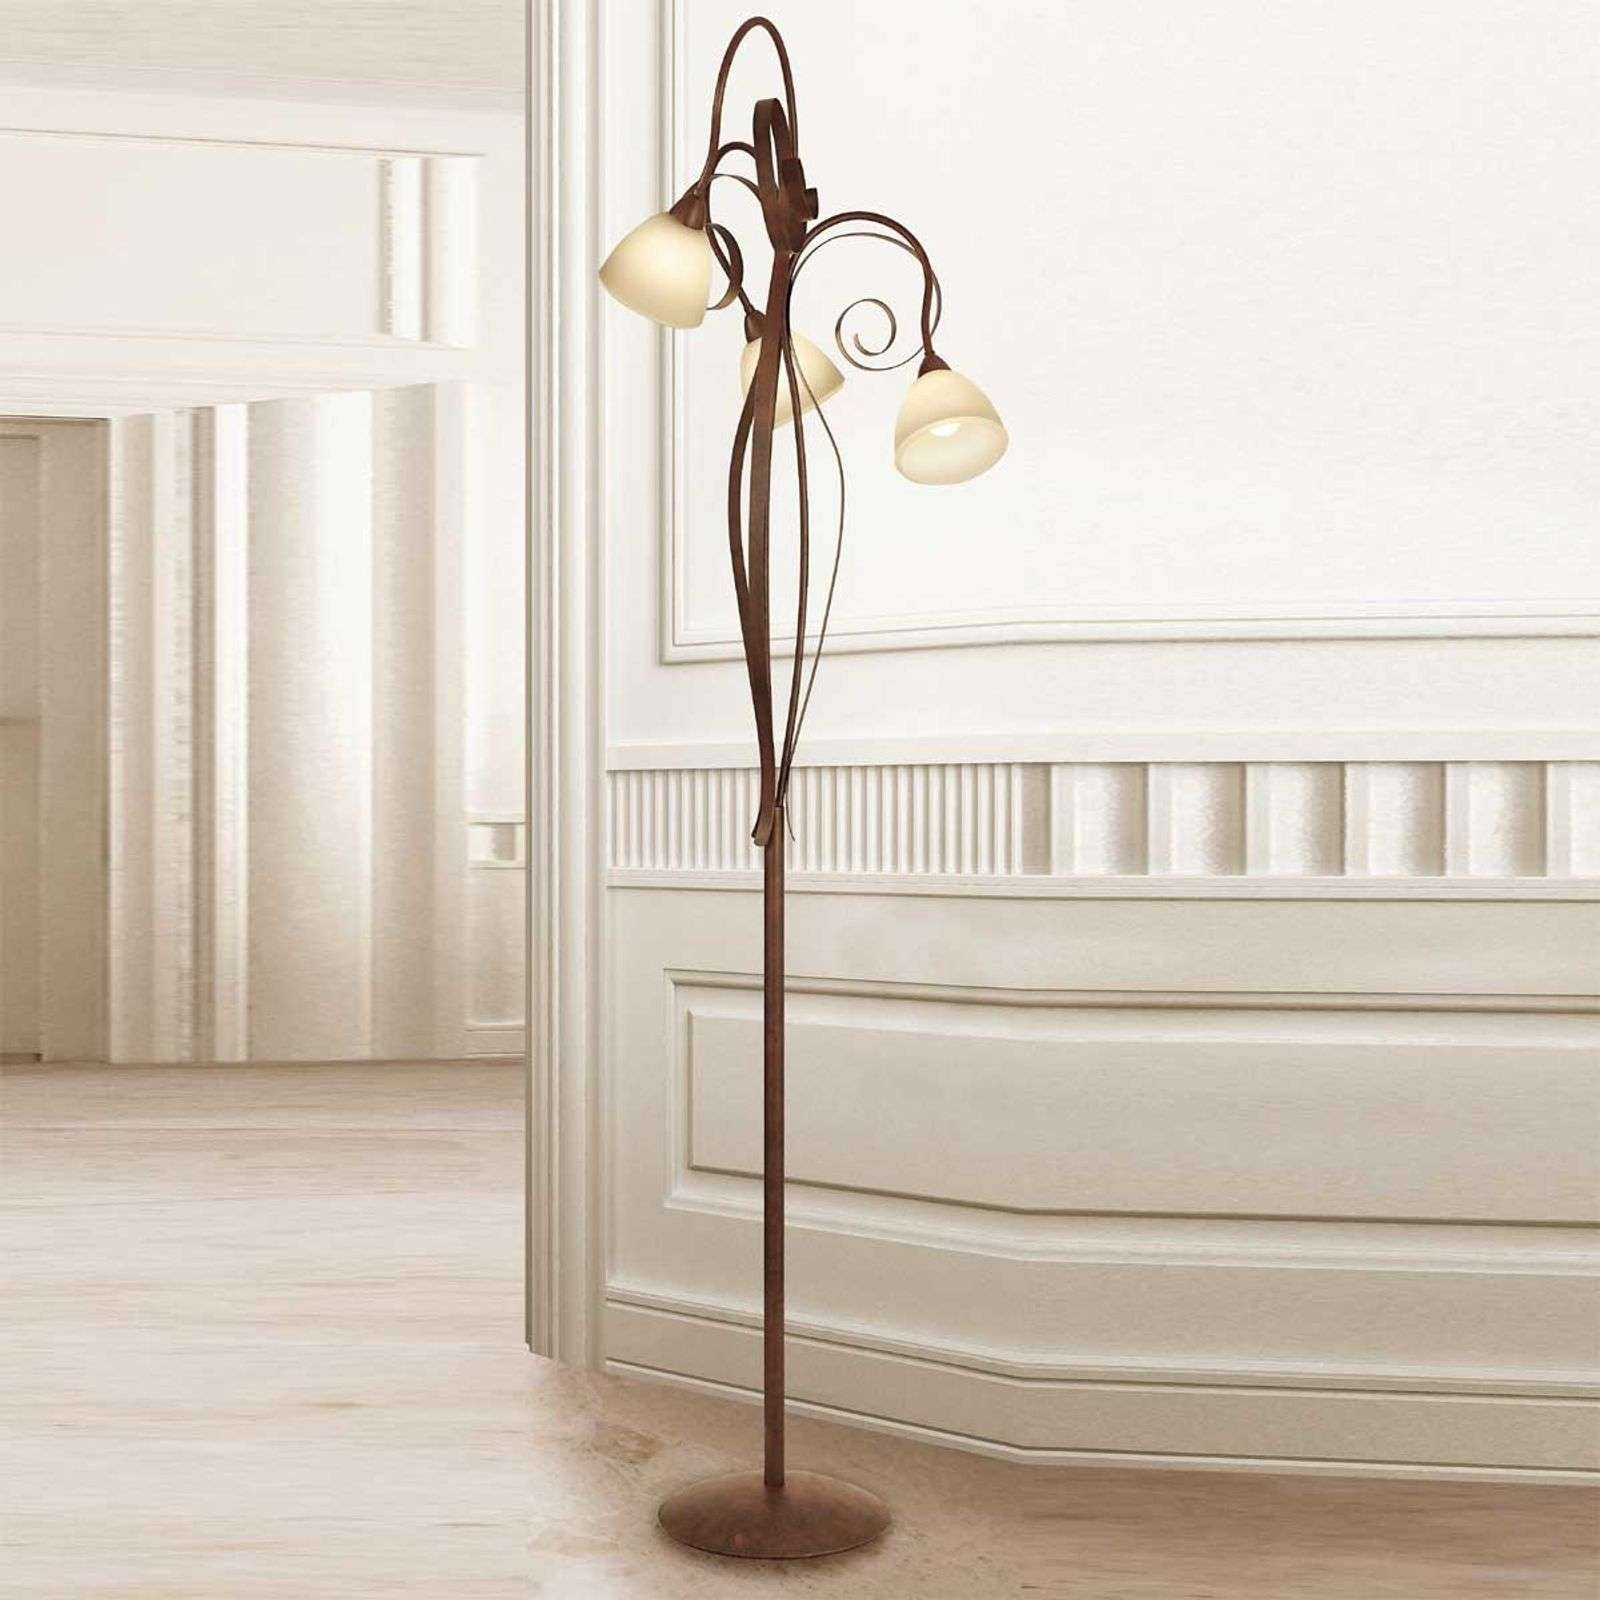 3 bulb floor lamp Francesco